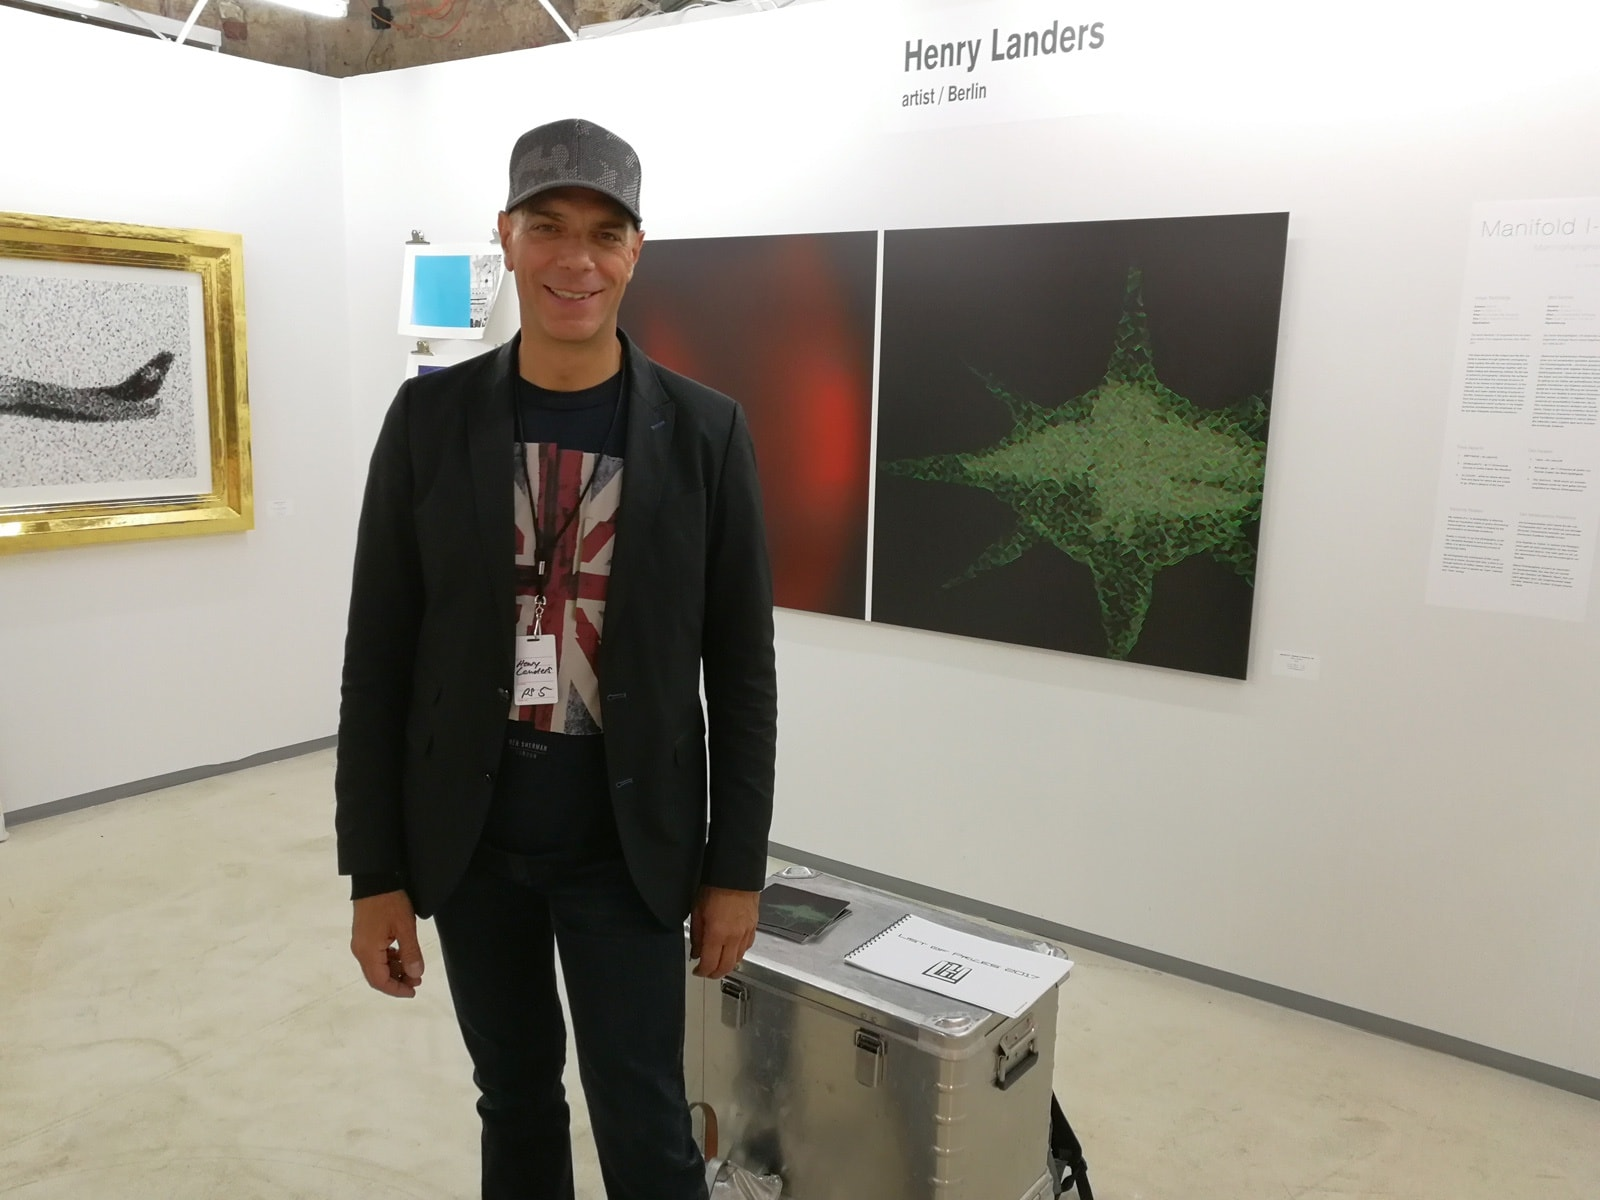 Henry Landers at his exhibition box